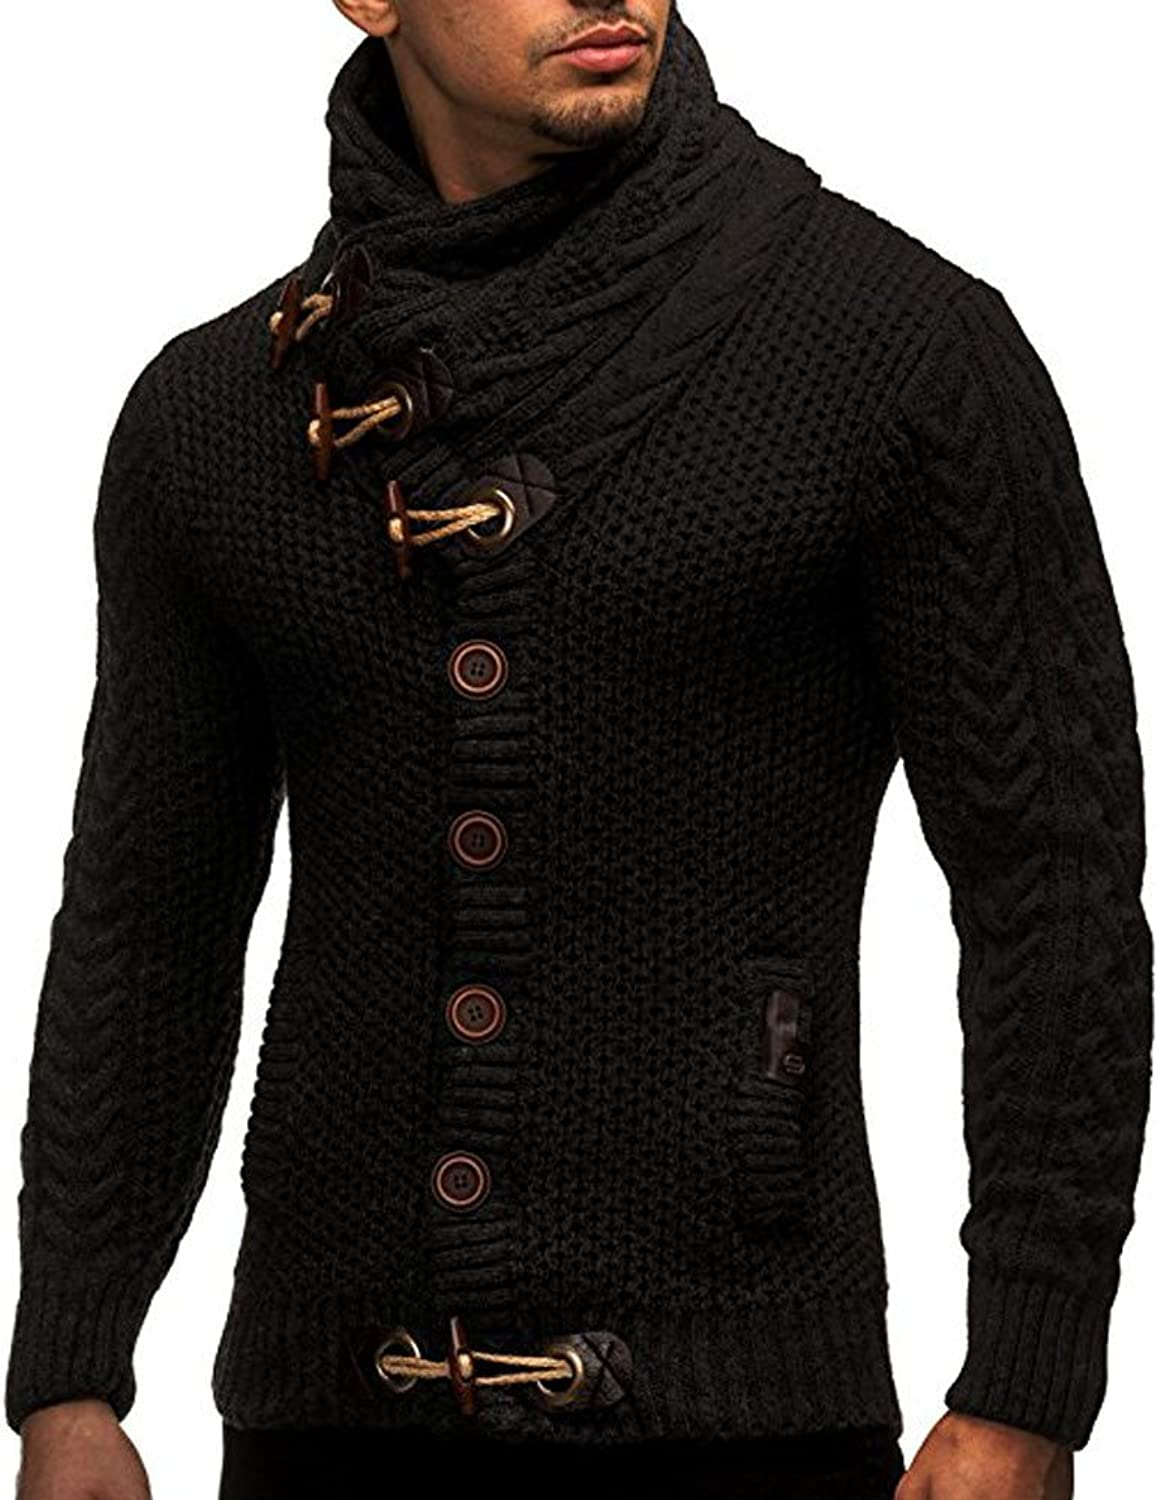 Ximandi Men Autumn Winter Casual Cardigan Sweater Coat Knitting Button High Collar Jacket